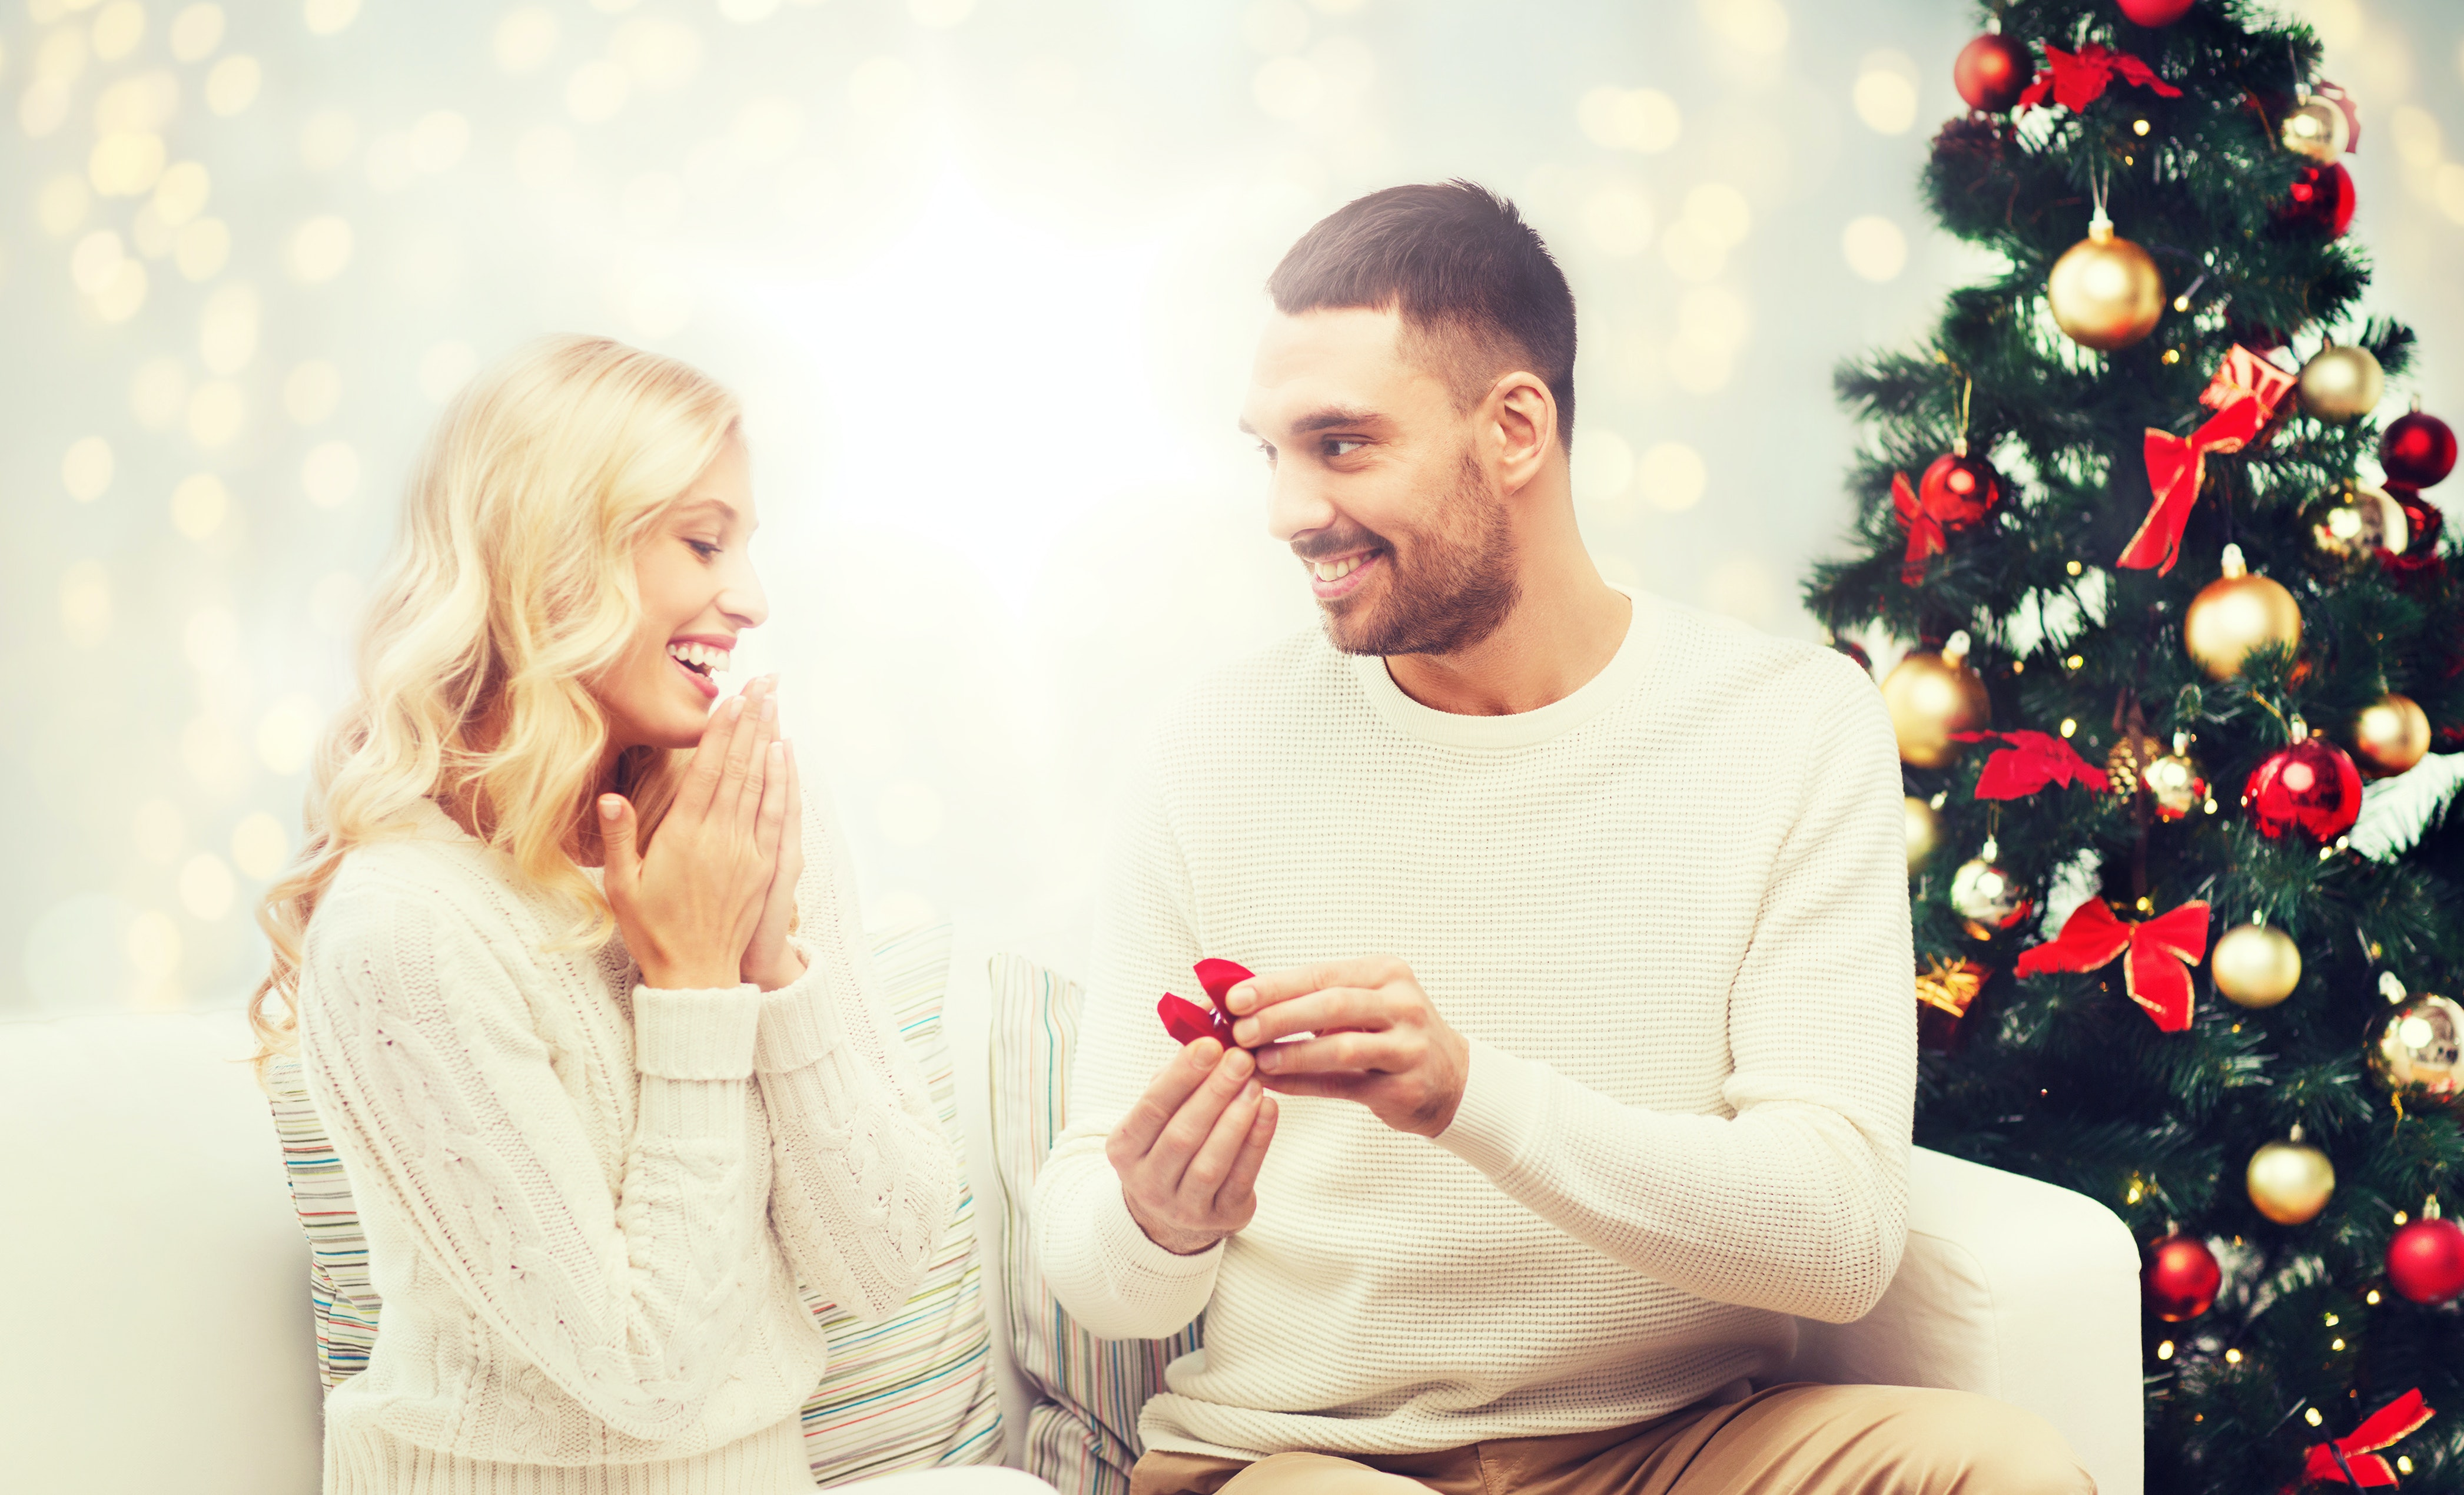 18 Instagram Captions For Christmas Engagement Ring That Are Too ...